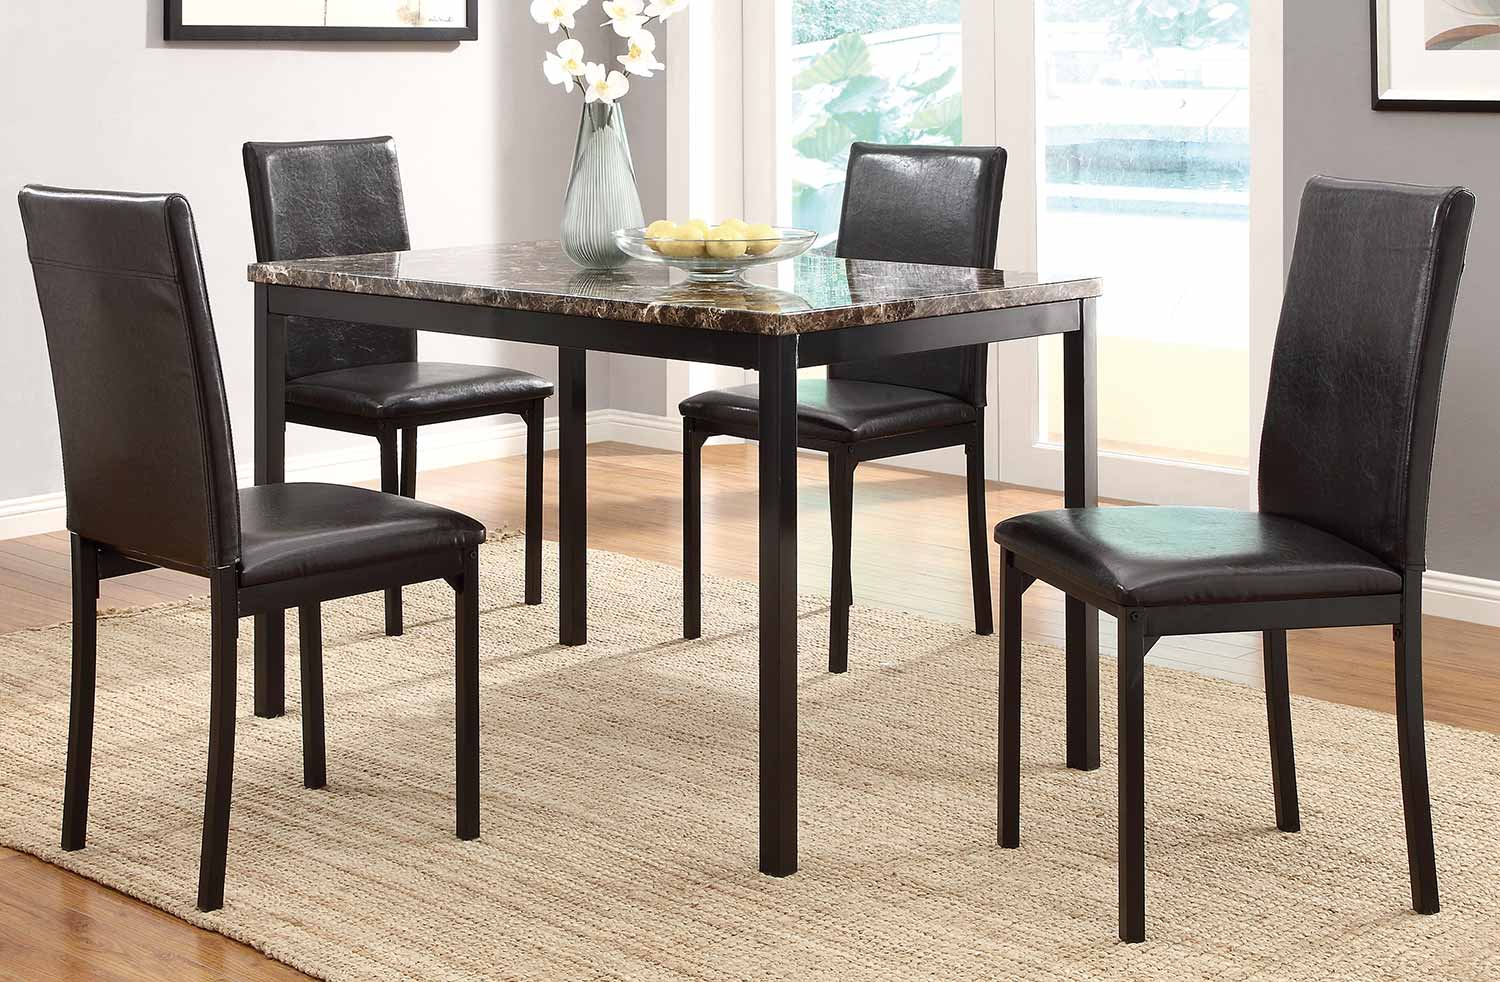 Homelegance Tempe Counter Height Dining Set - Black Metal